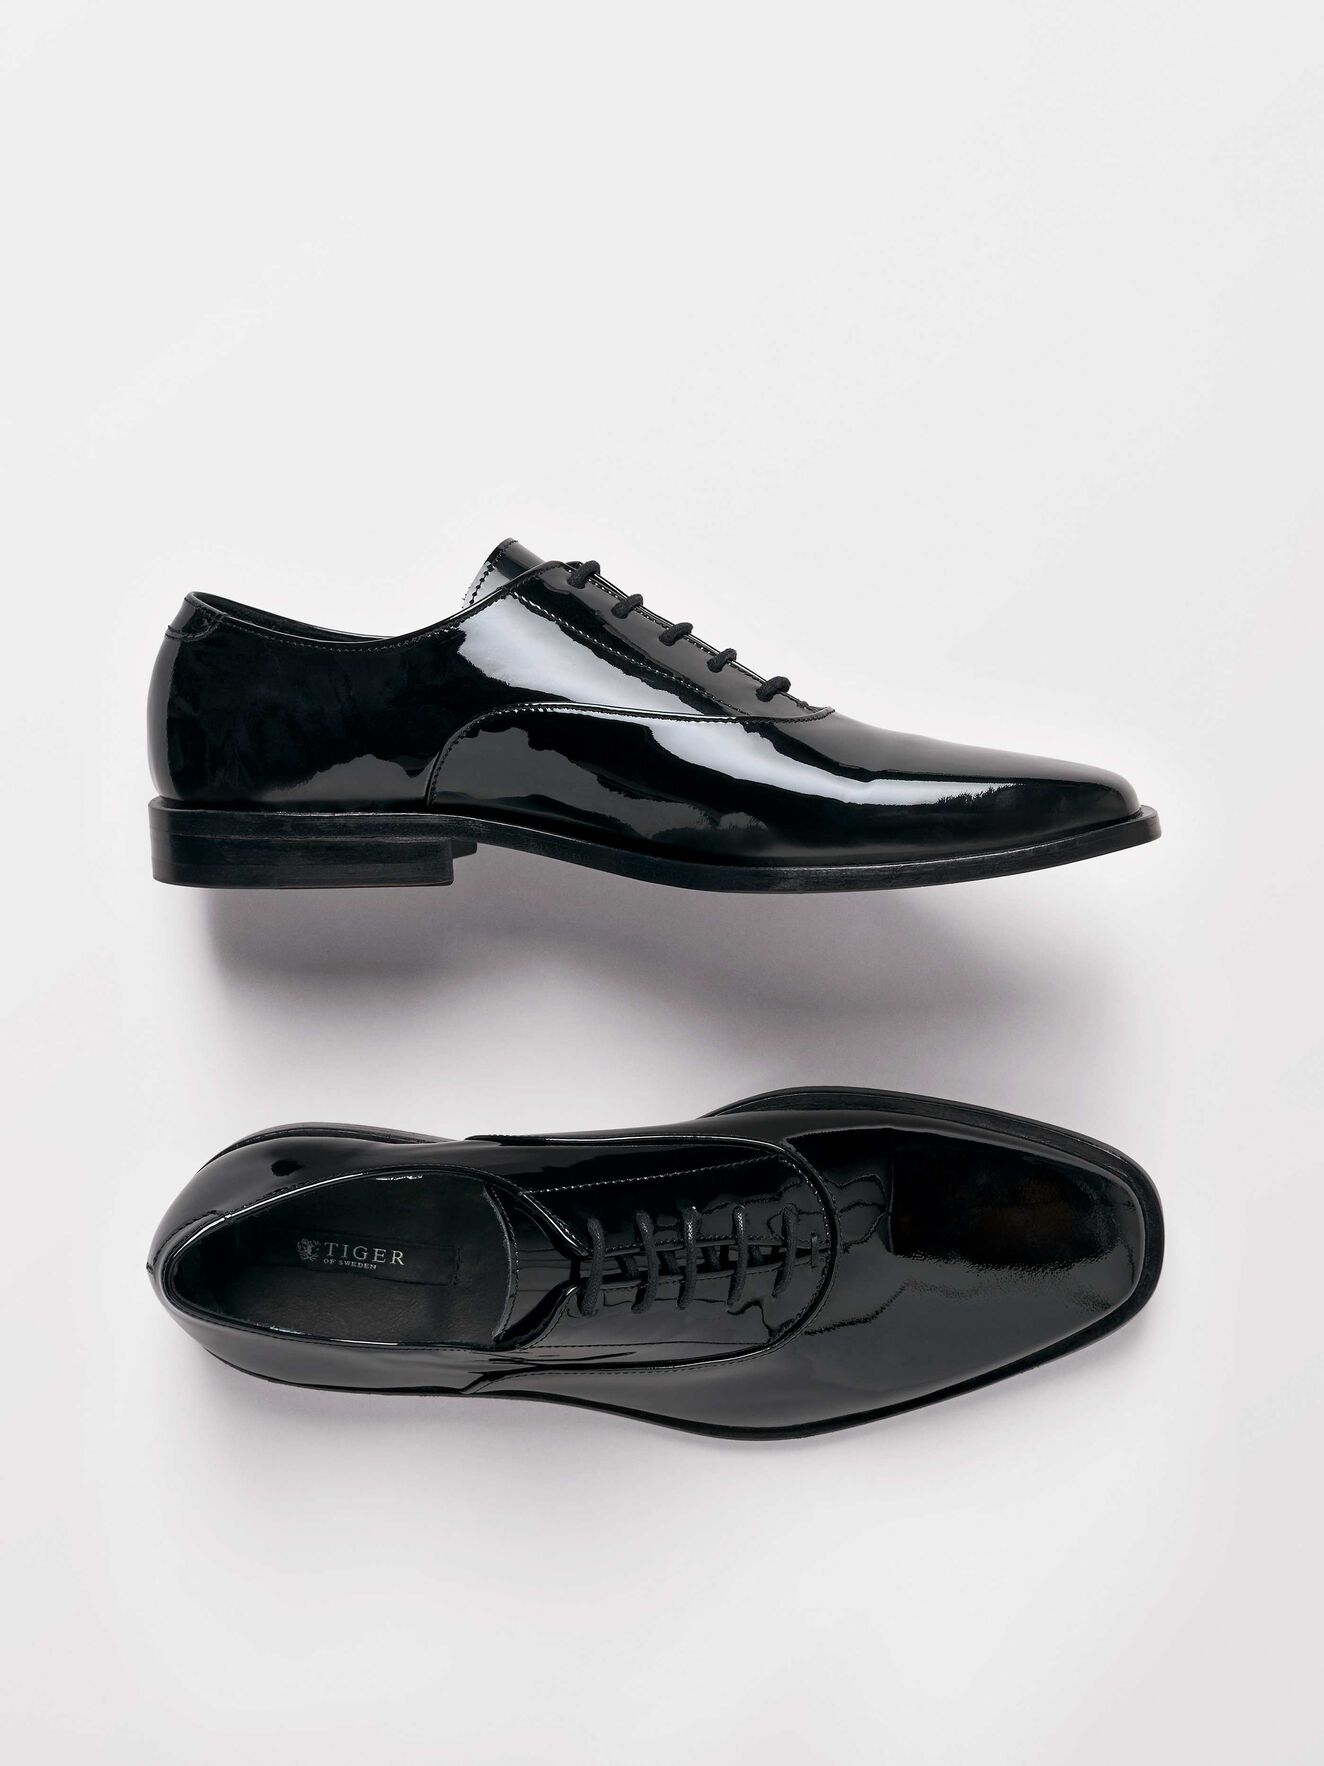 Saut Shoes in Black from Tiger of Sweden